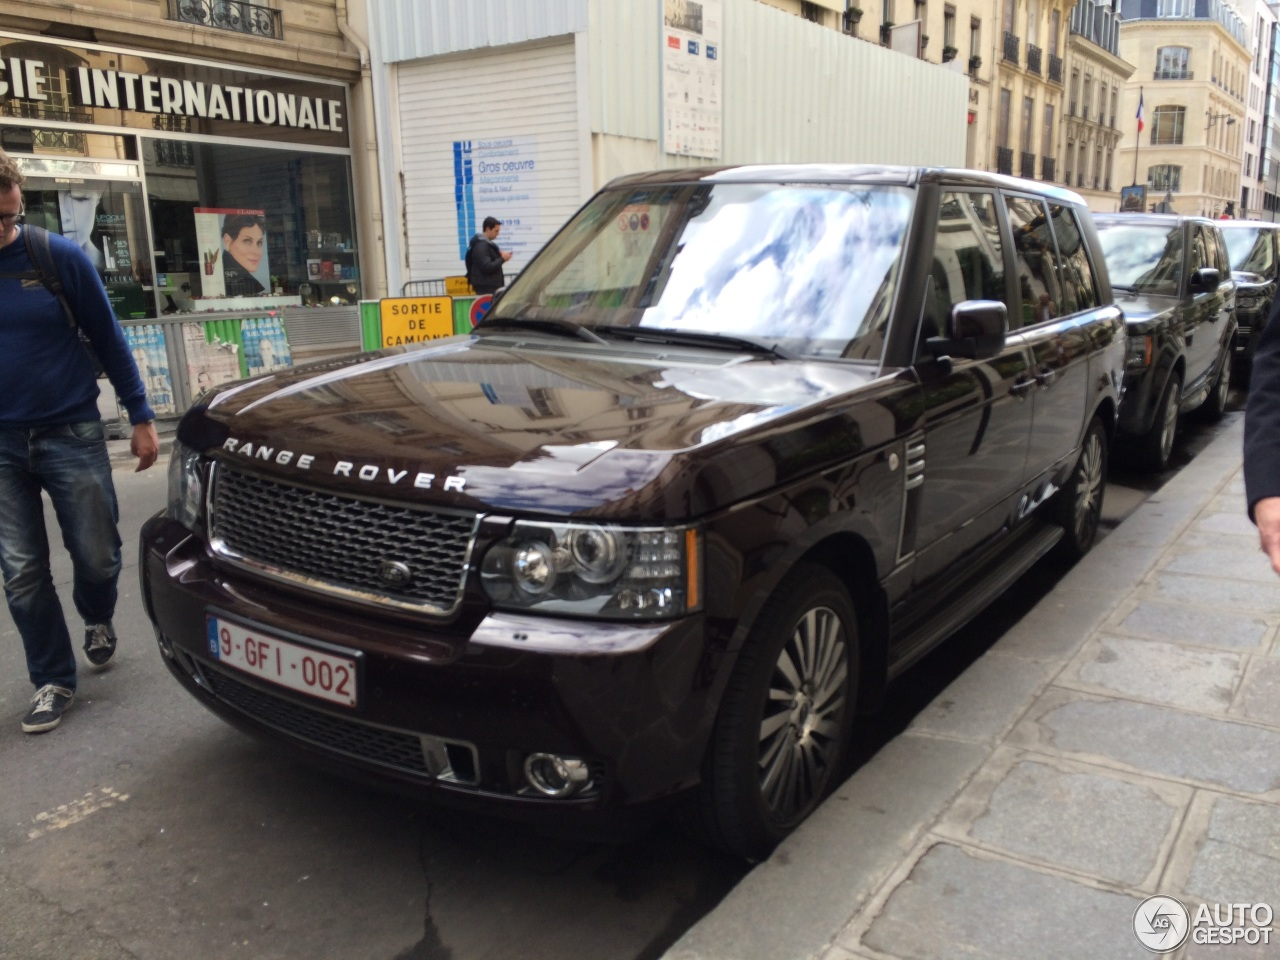 https://ag-spots-2015.o.auroraobjects.eu/2015/04/18/land-rover-range-rover-autobiography-supercharged-ultimate-edition-ewb-carat-duchatelet-c880618042015083831_1.jpg